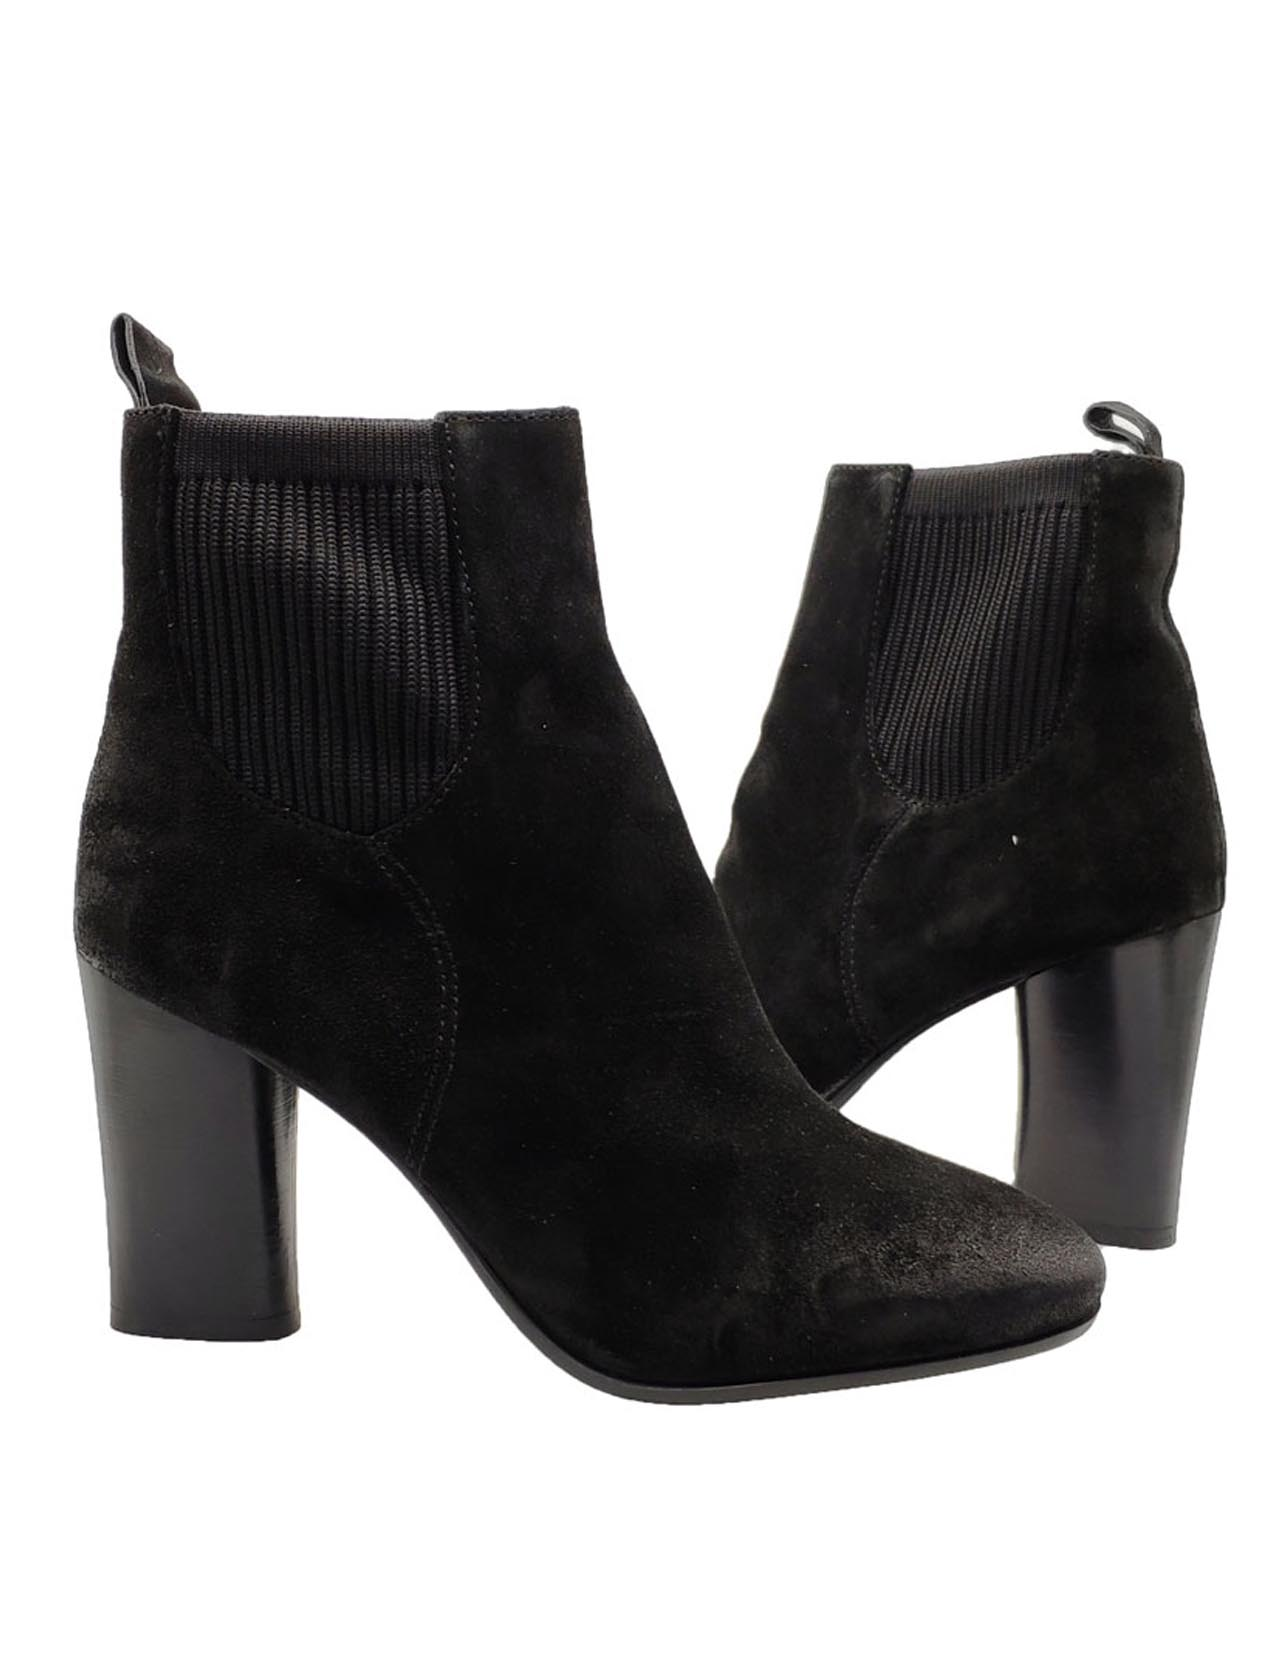 Beatles Women's Ankle Boots Bruno Premi | Ankle Boots | BY5704PNERO